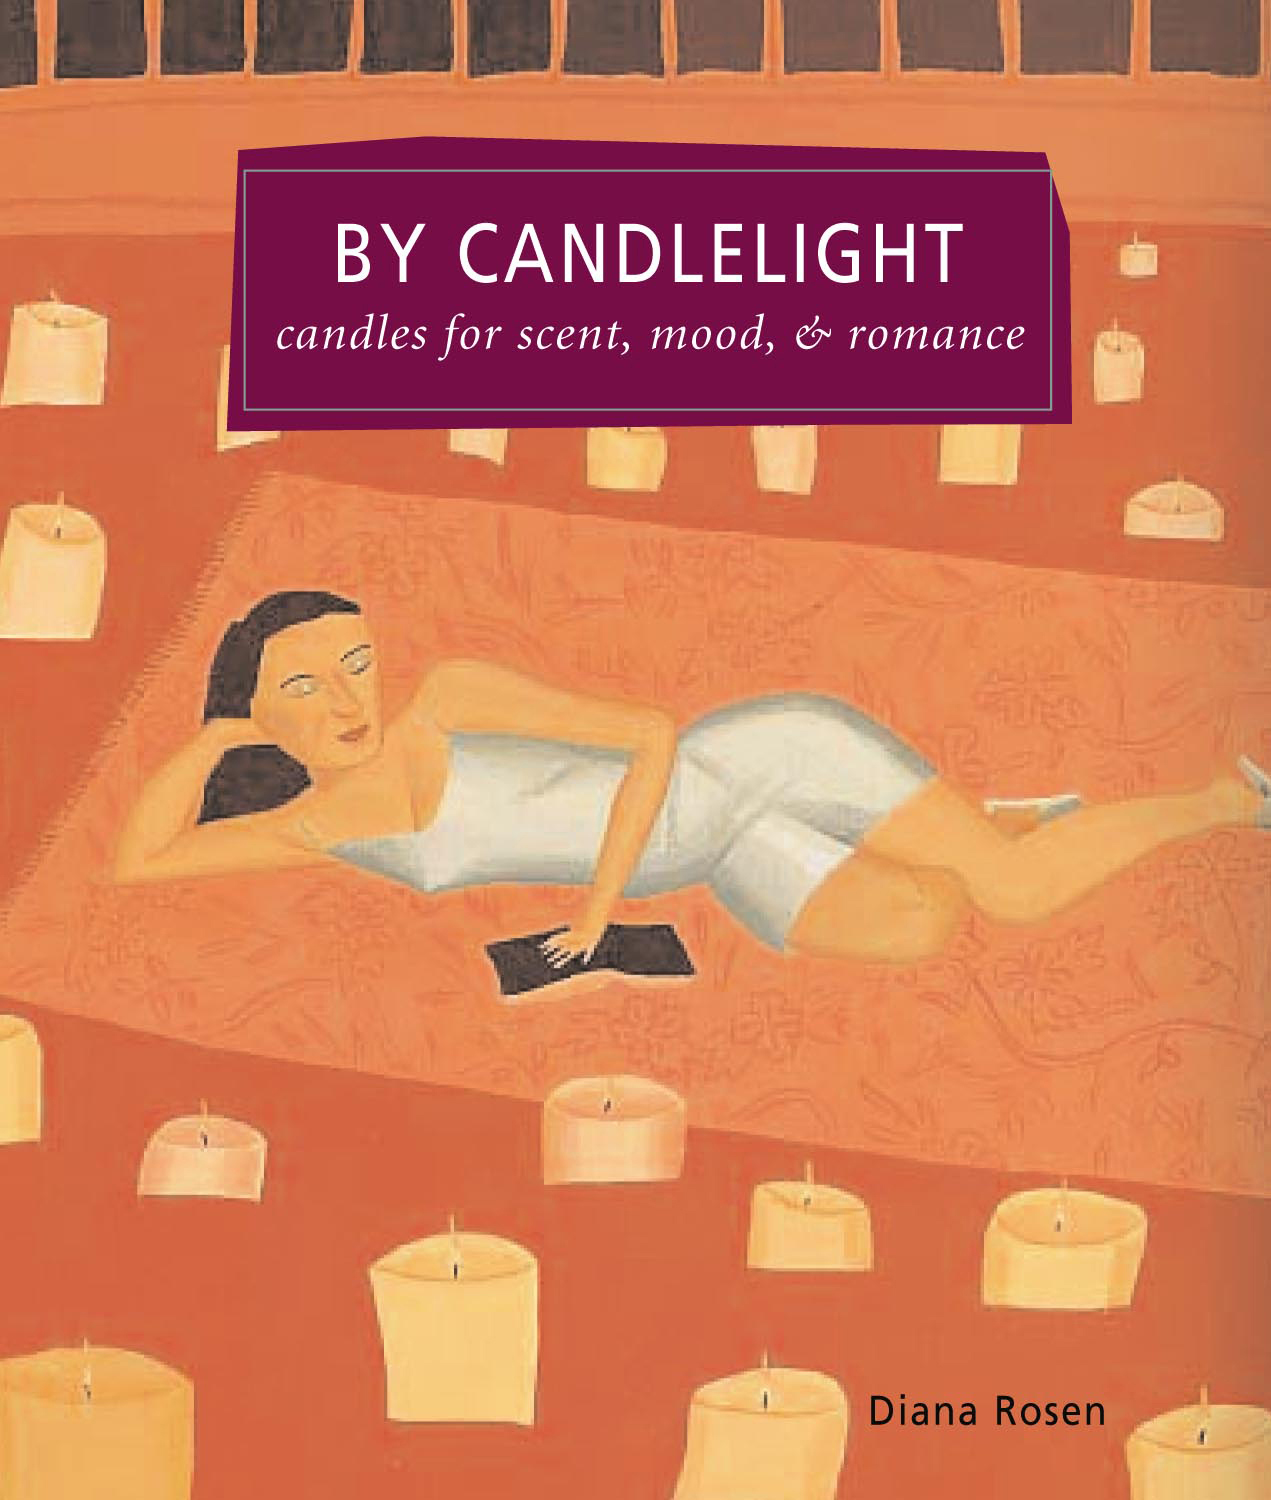 By Candlelight Candles for Scent, Mood & Romance - Diana Rosen